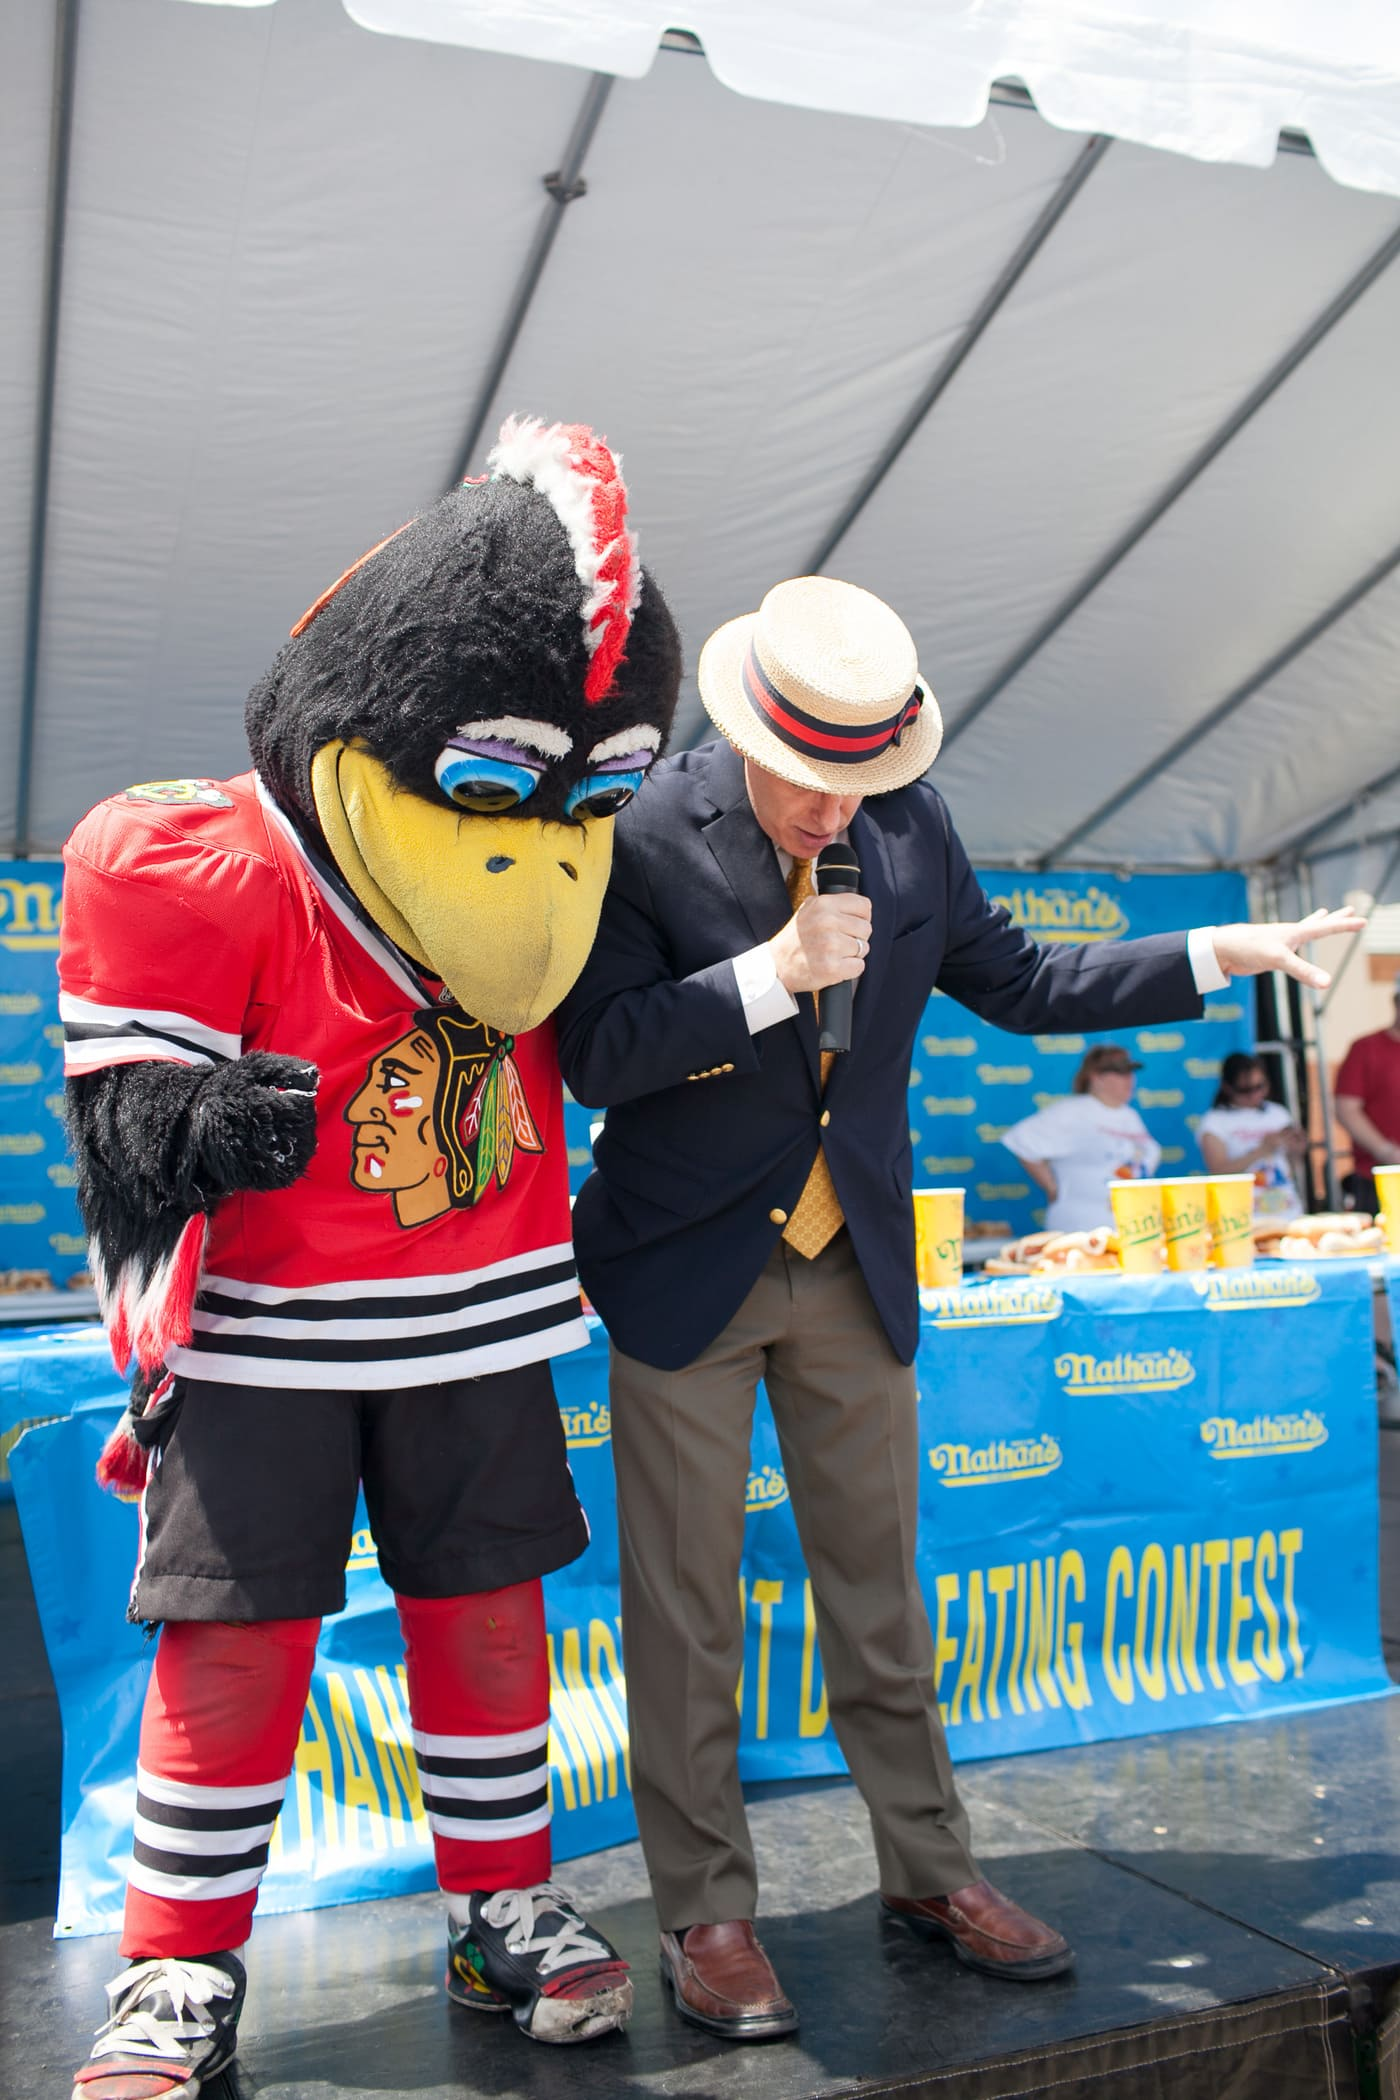 George Shea and Tommy Hawk introduce the hot dog eating contest at the Bloomingdale, Illinois, Kmart